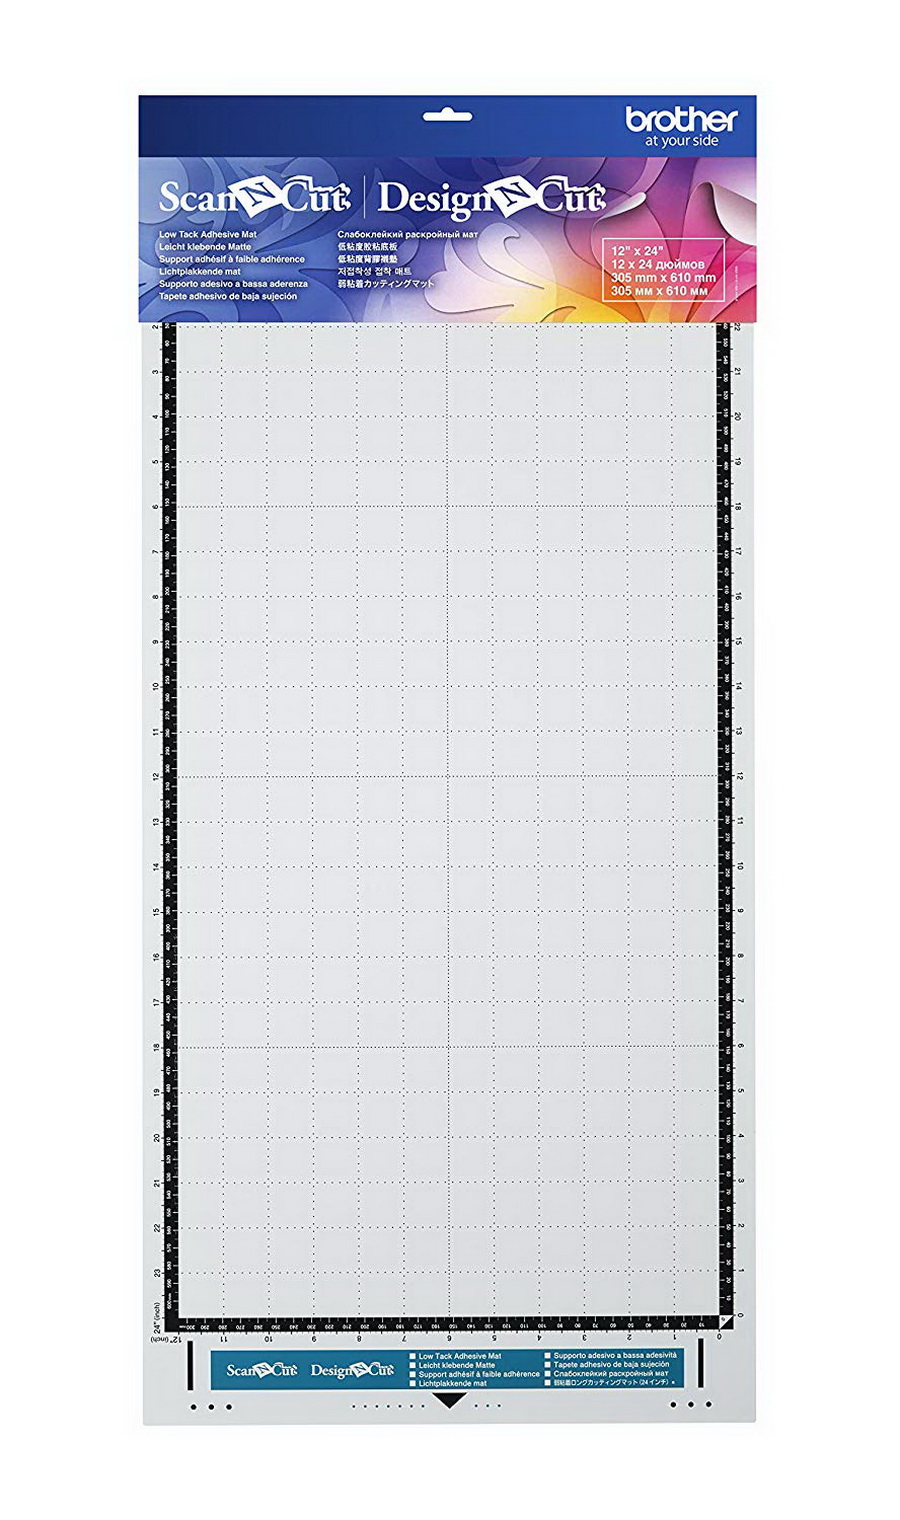 Brother Scan N Cut 12in x 24in Low Tack Adhesive Mat